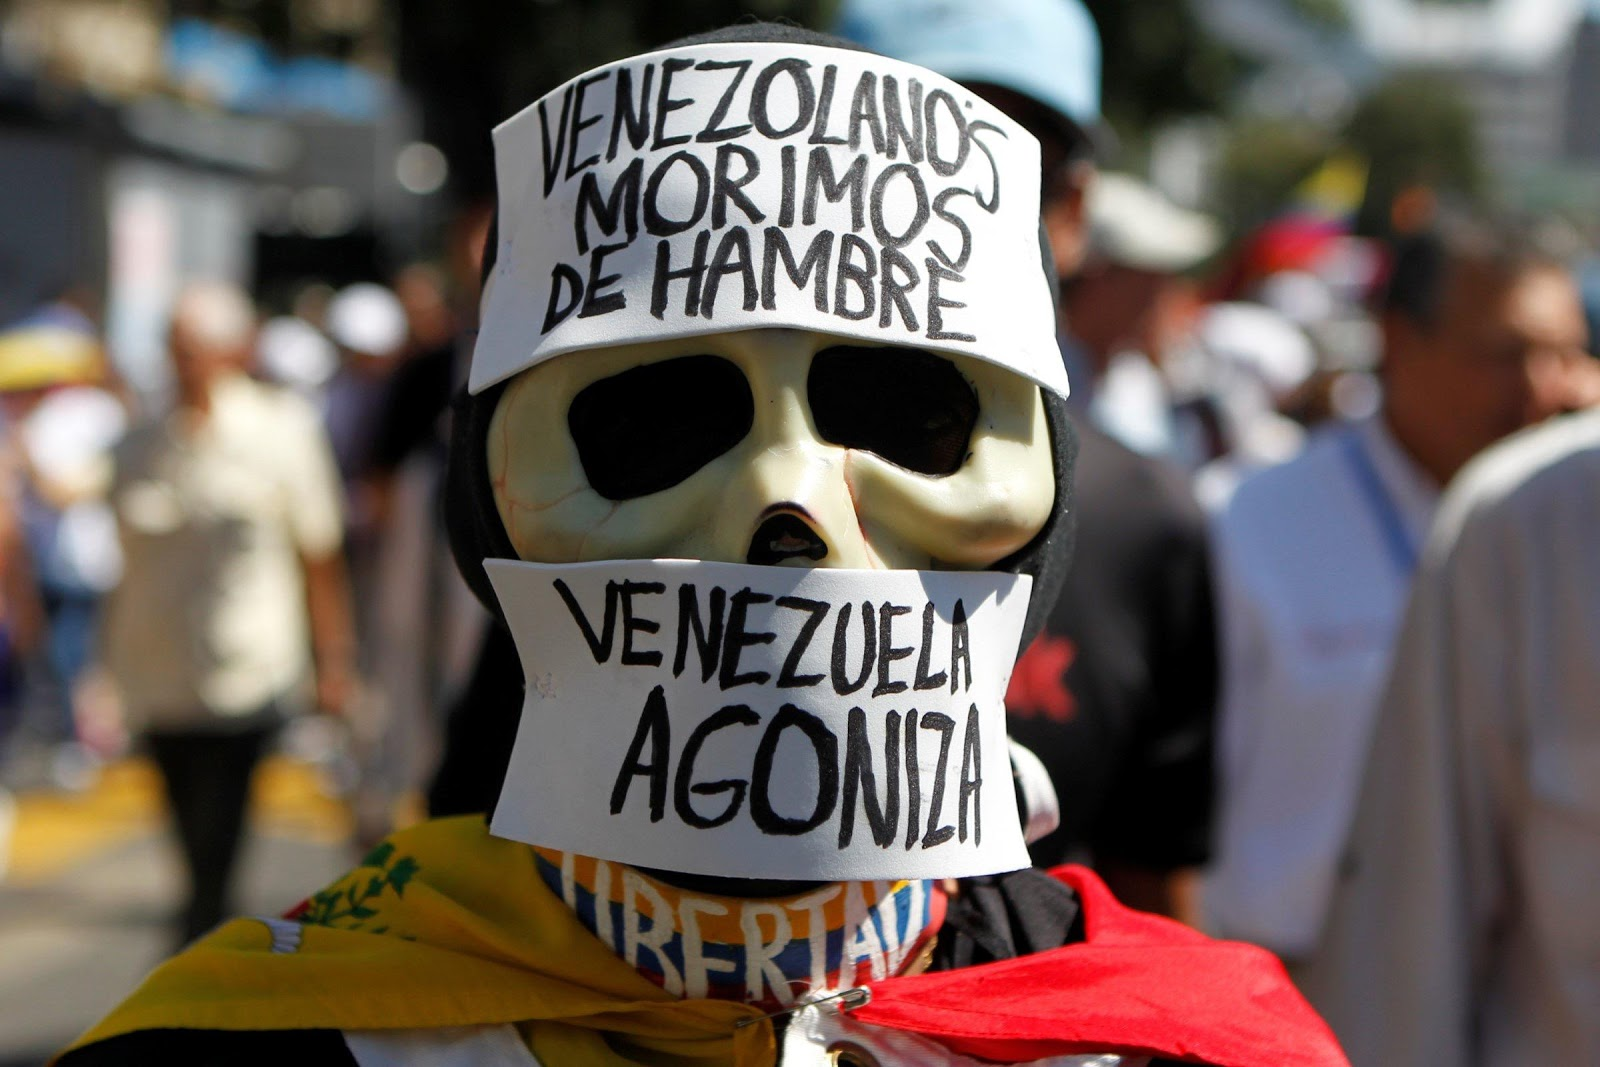 """Opposition supporter wearing a costume at a rally against Maduro's governance that says, """"Venezuelans we die of hunger. Venezuela agonizes"""".     Image Credit: Christian Veron, Business Insider UK"""